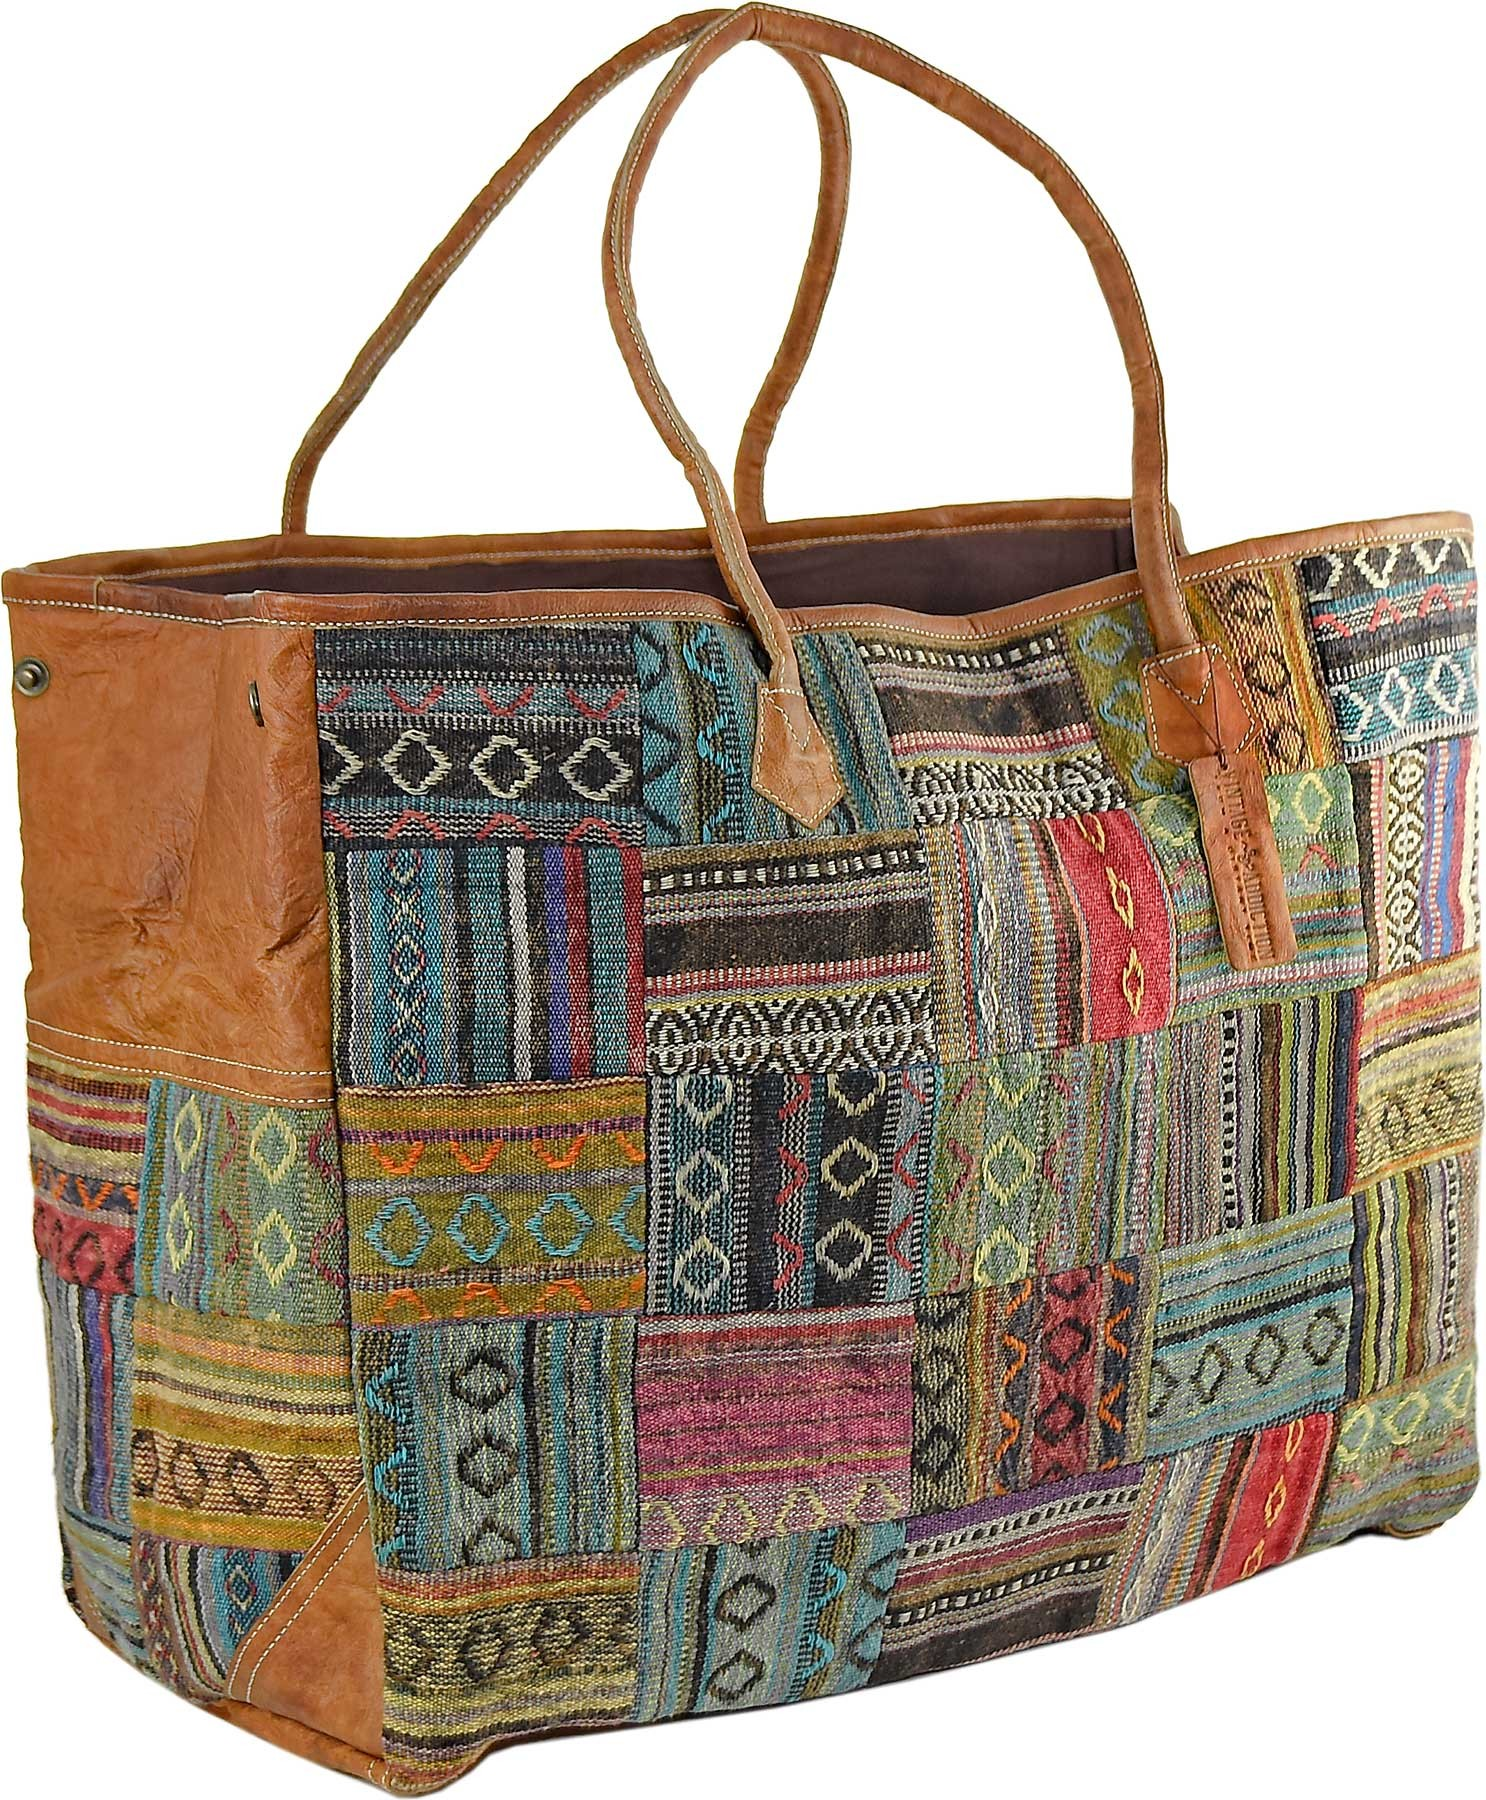 97cf0a8d505f Wanderlust Oversized Tote Bag w Leather Side Trim - Bags   Accessories